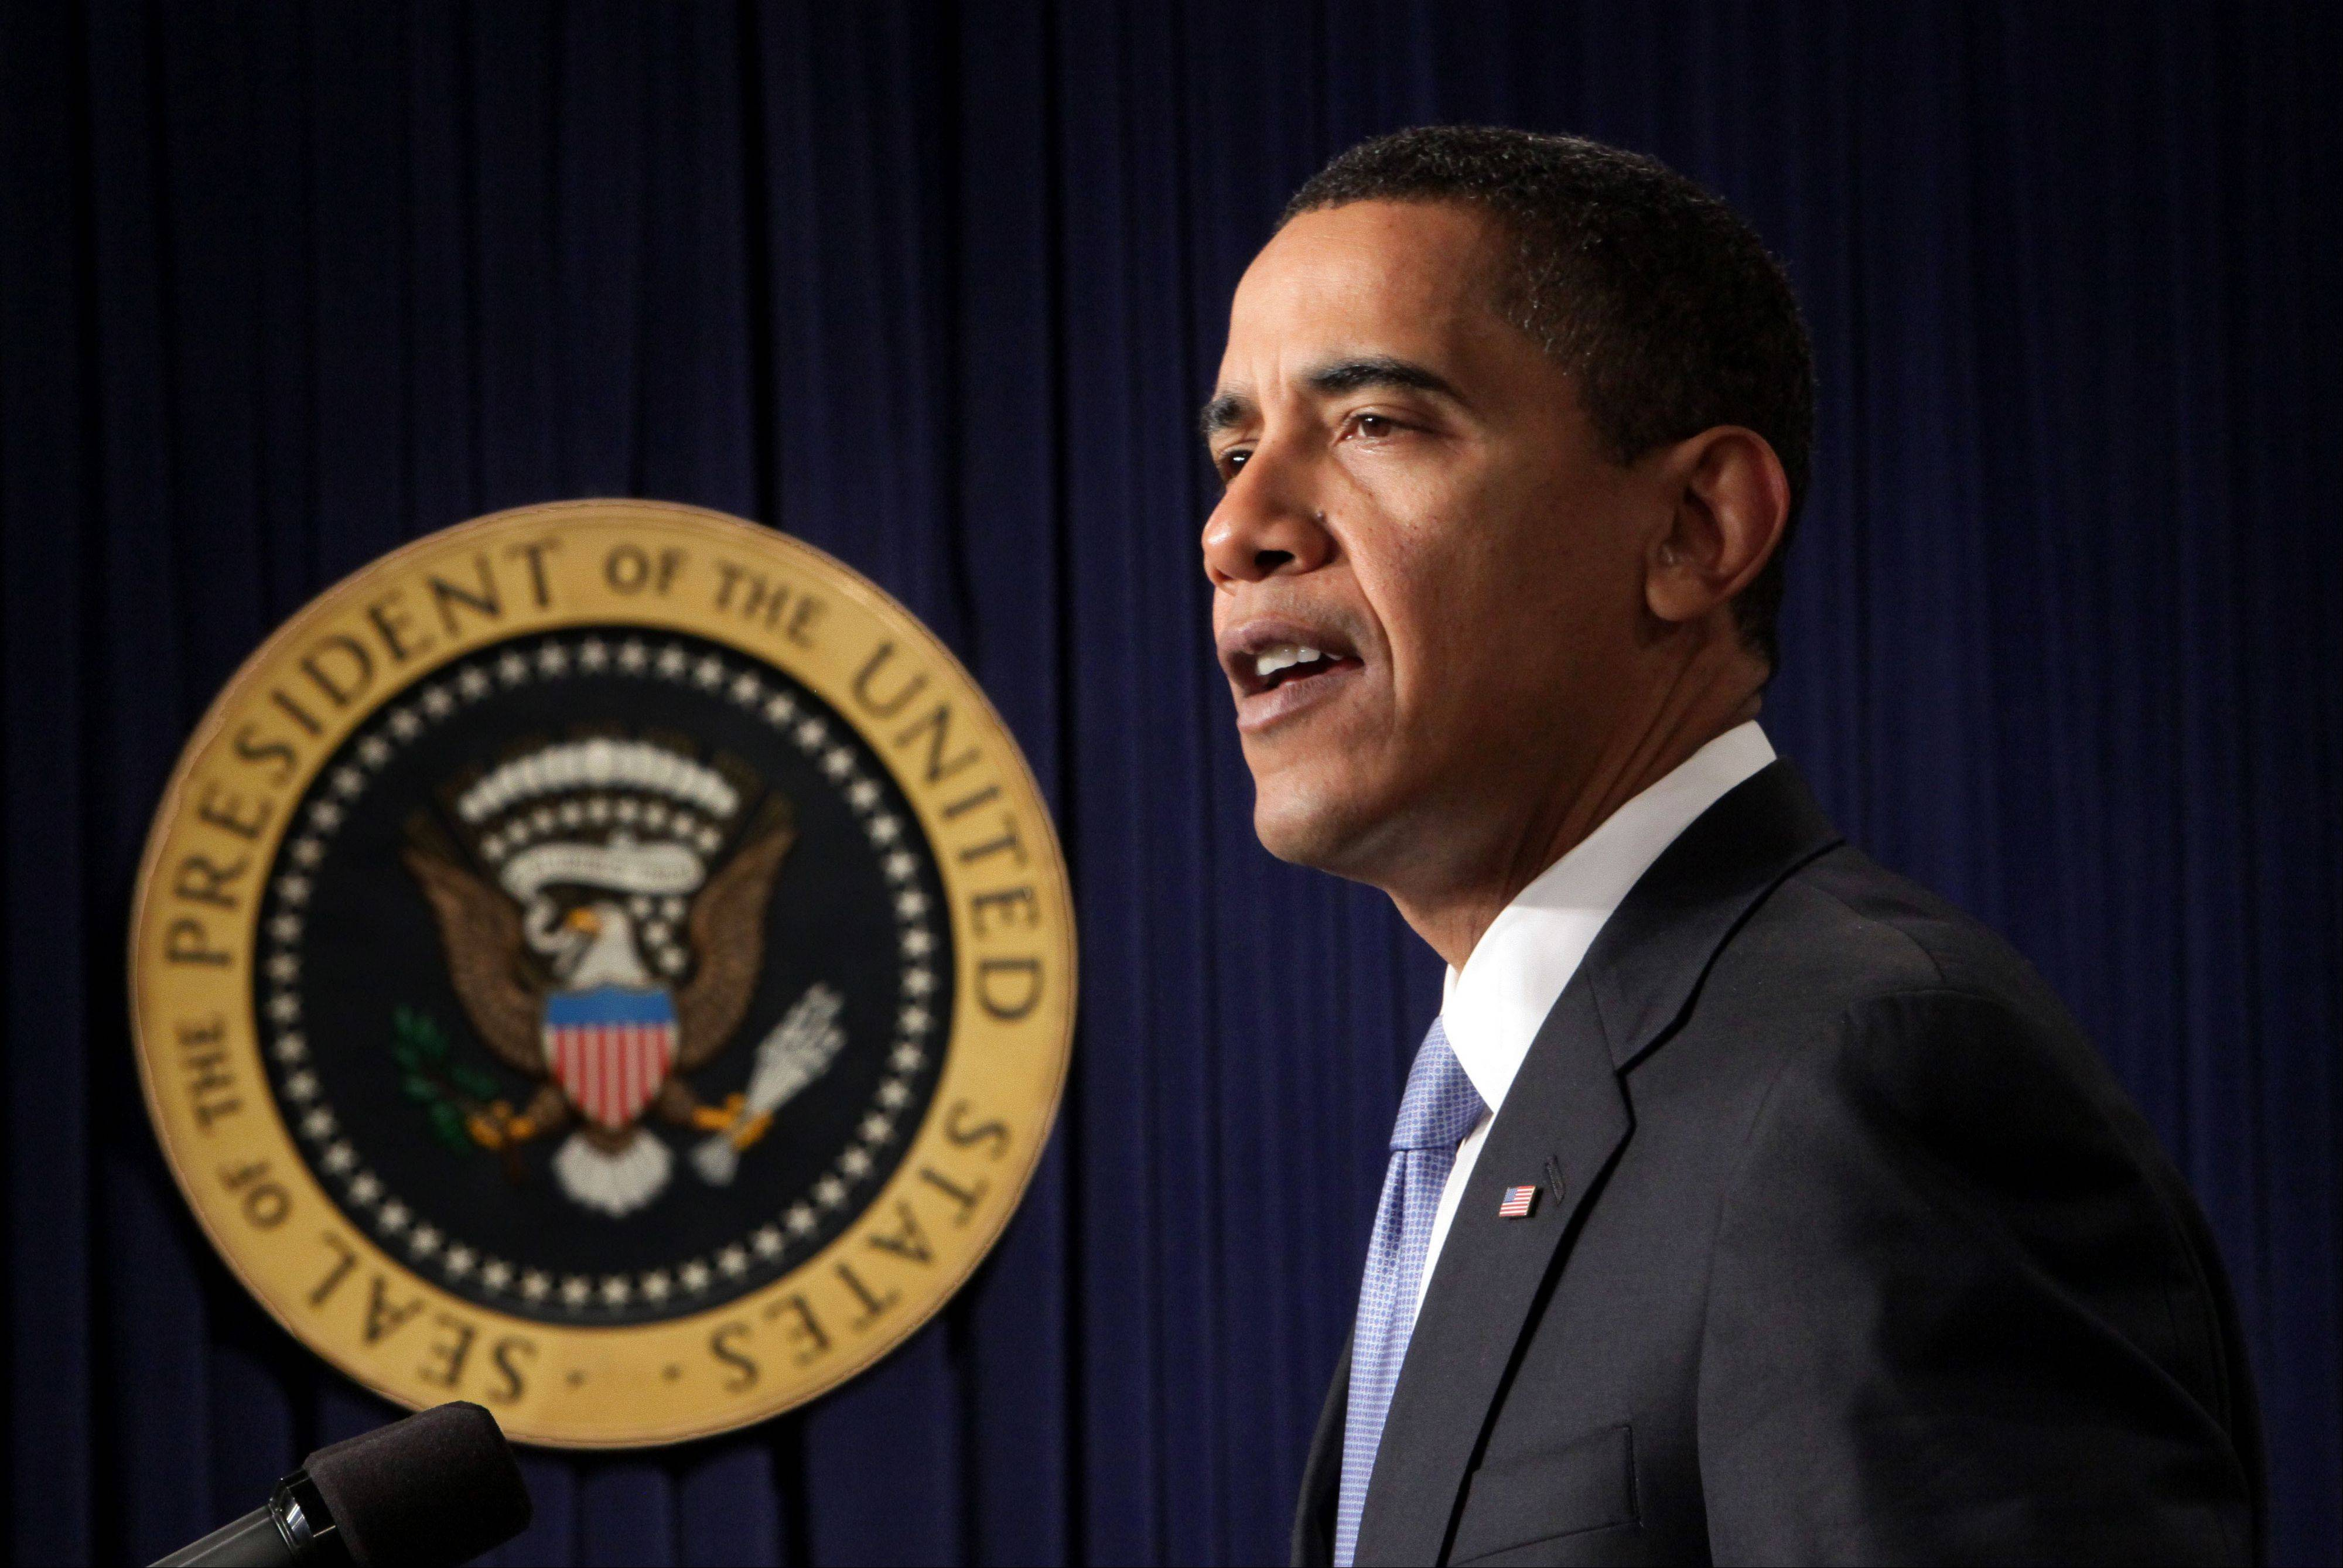 Promising to reinvigorate the Freedom of Information Act, President Barack Obama issued an executive order his first day in office and told all federal agencies to adopt a �presumption in favor of disclosure.�